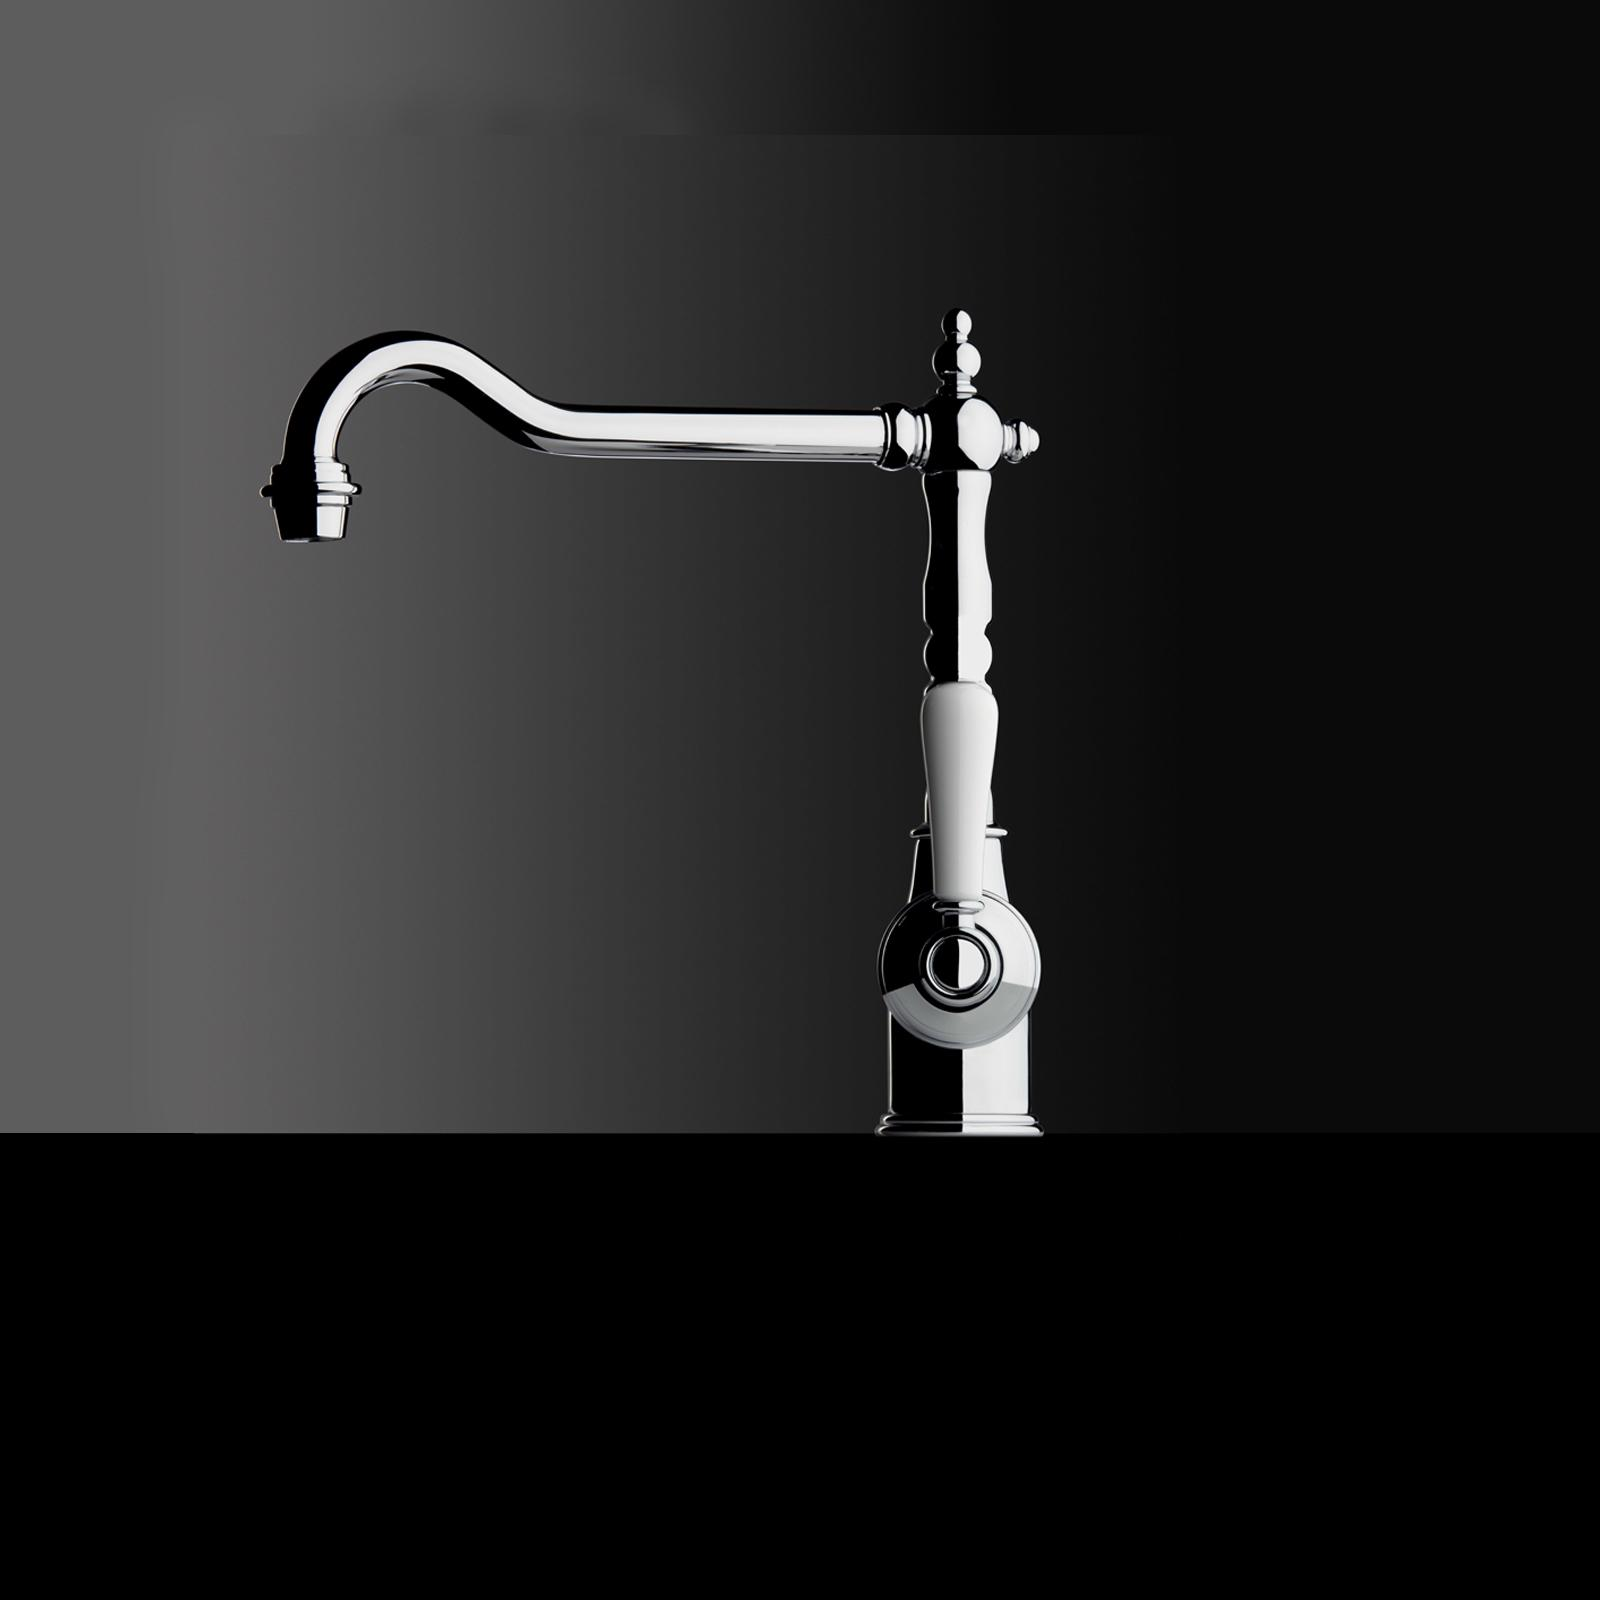 High-quality single lever tap Charlotte - Chrome - ambience 2